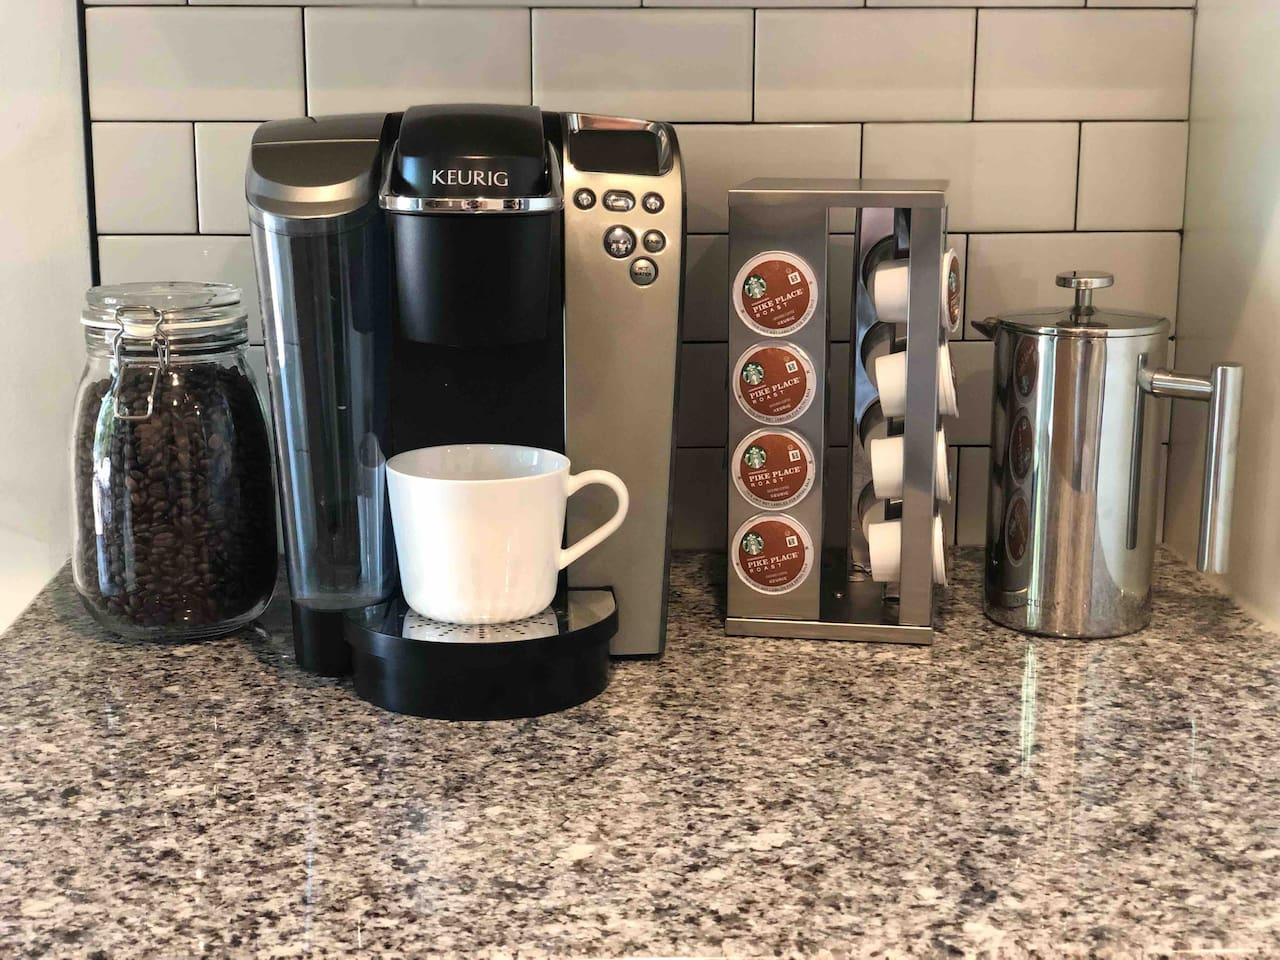 Complimentary Keurig or french press coffee to start your day!